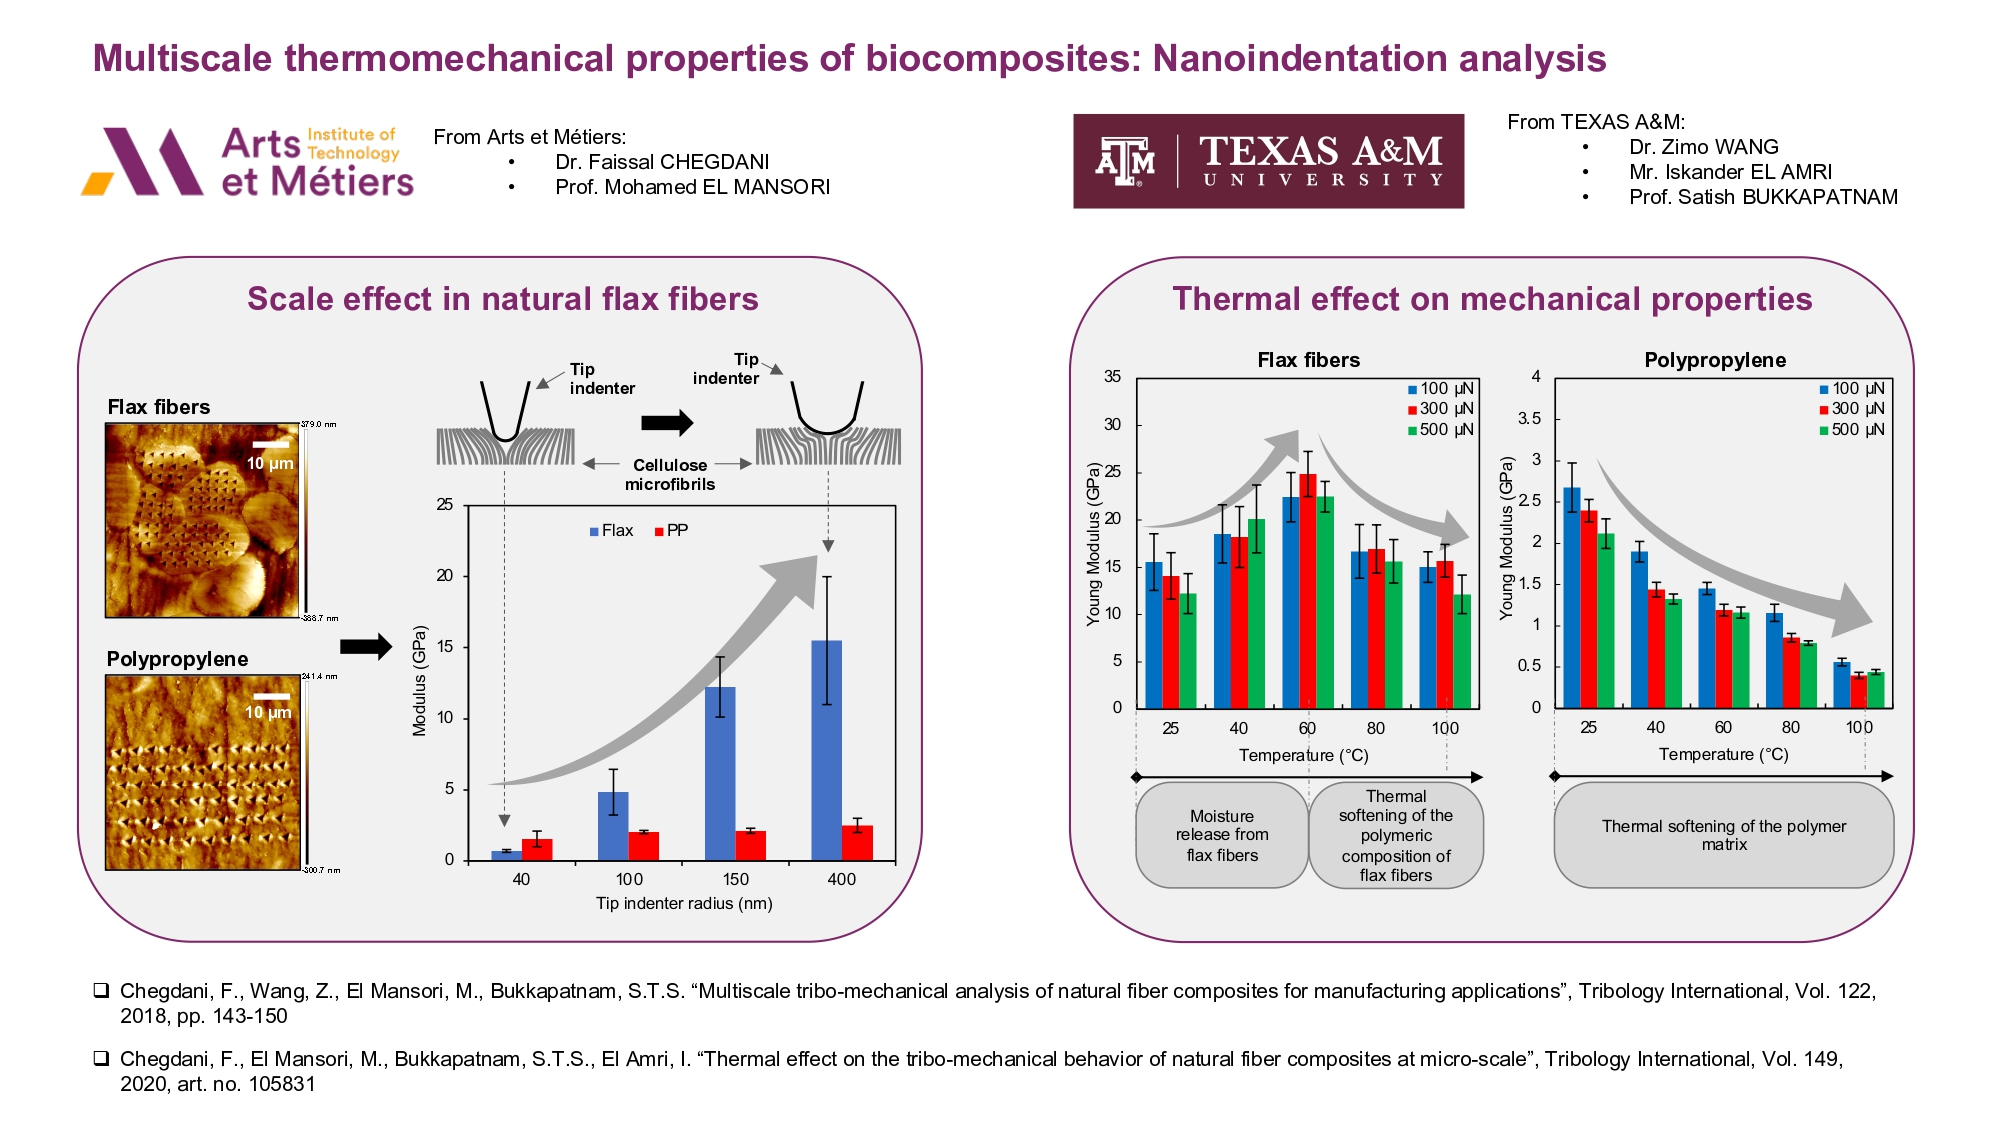 Multiscale thermomechanical properties of biocomposites: Nanoindentation analysis | Events AM2